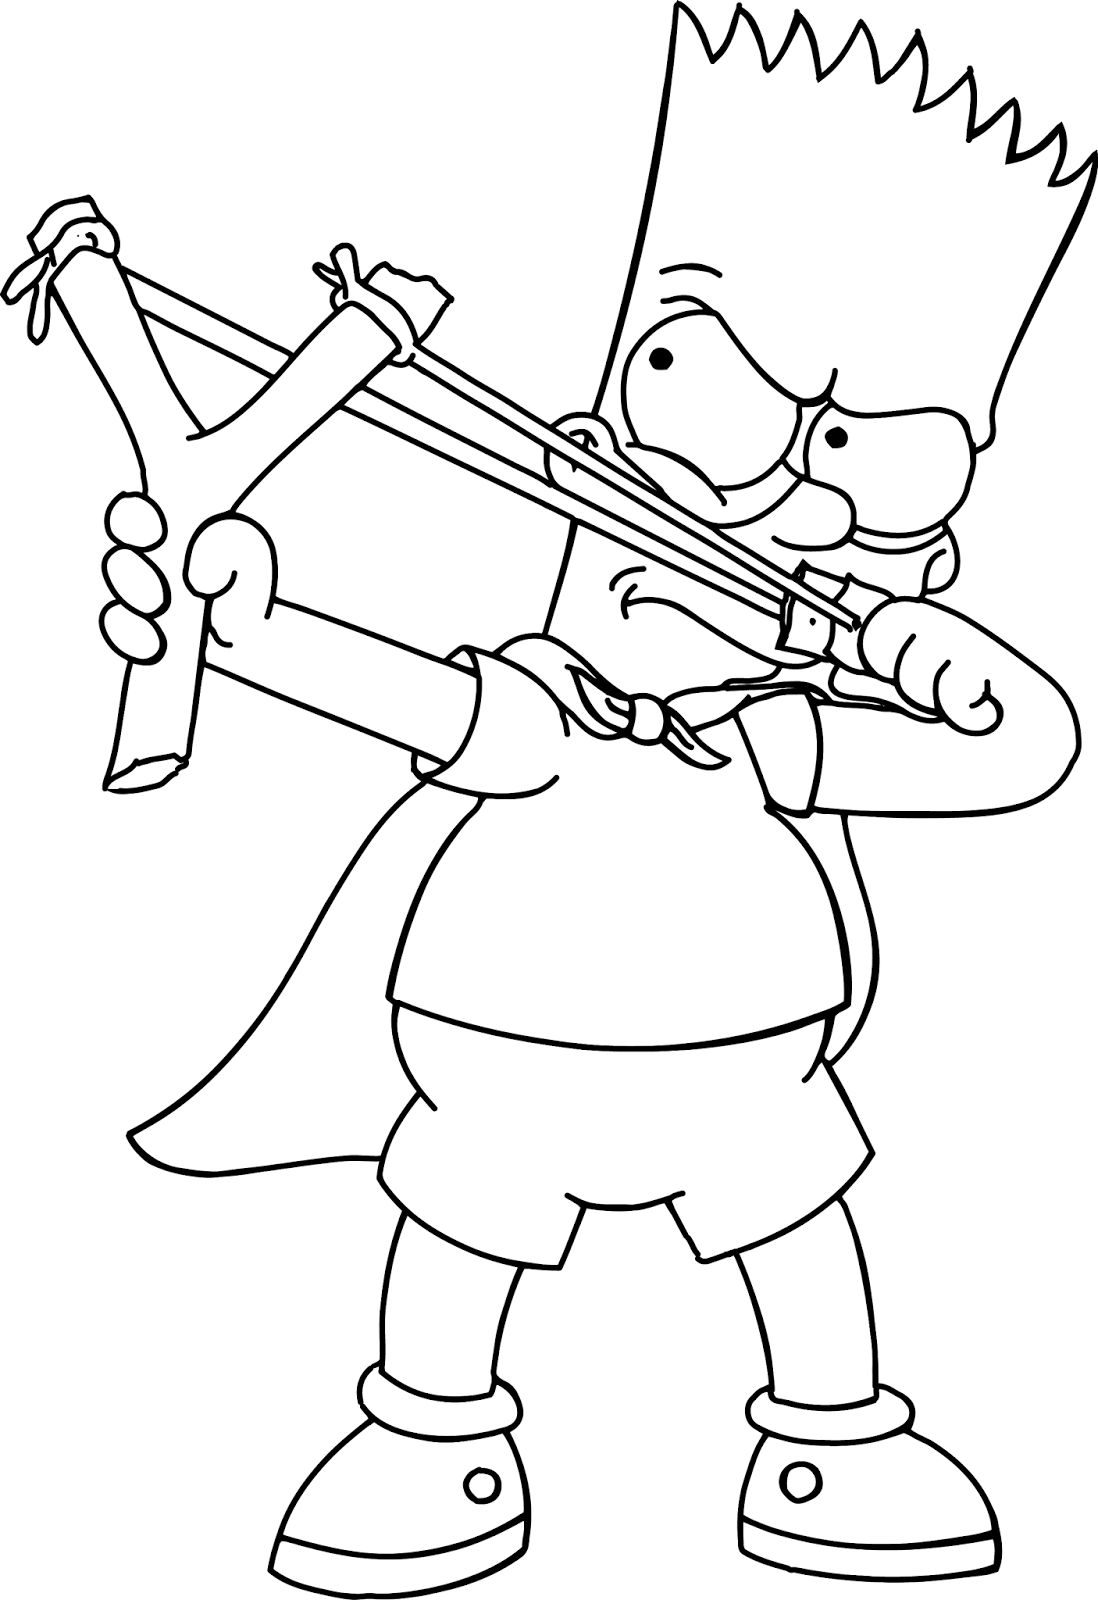 bartman simpsons coloring pages - photo#26